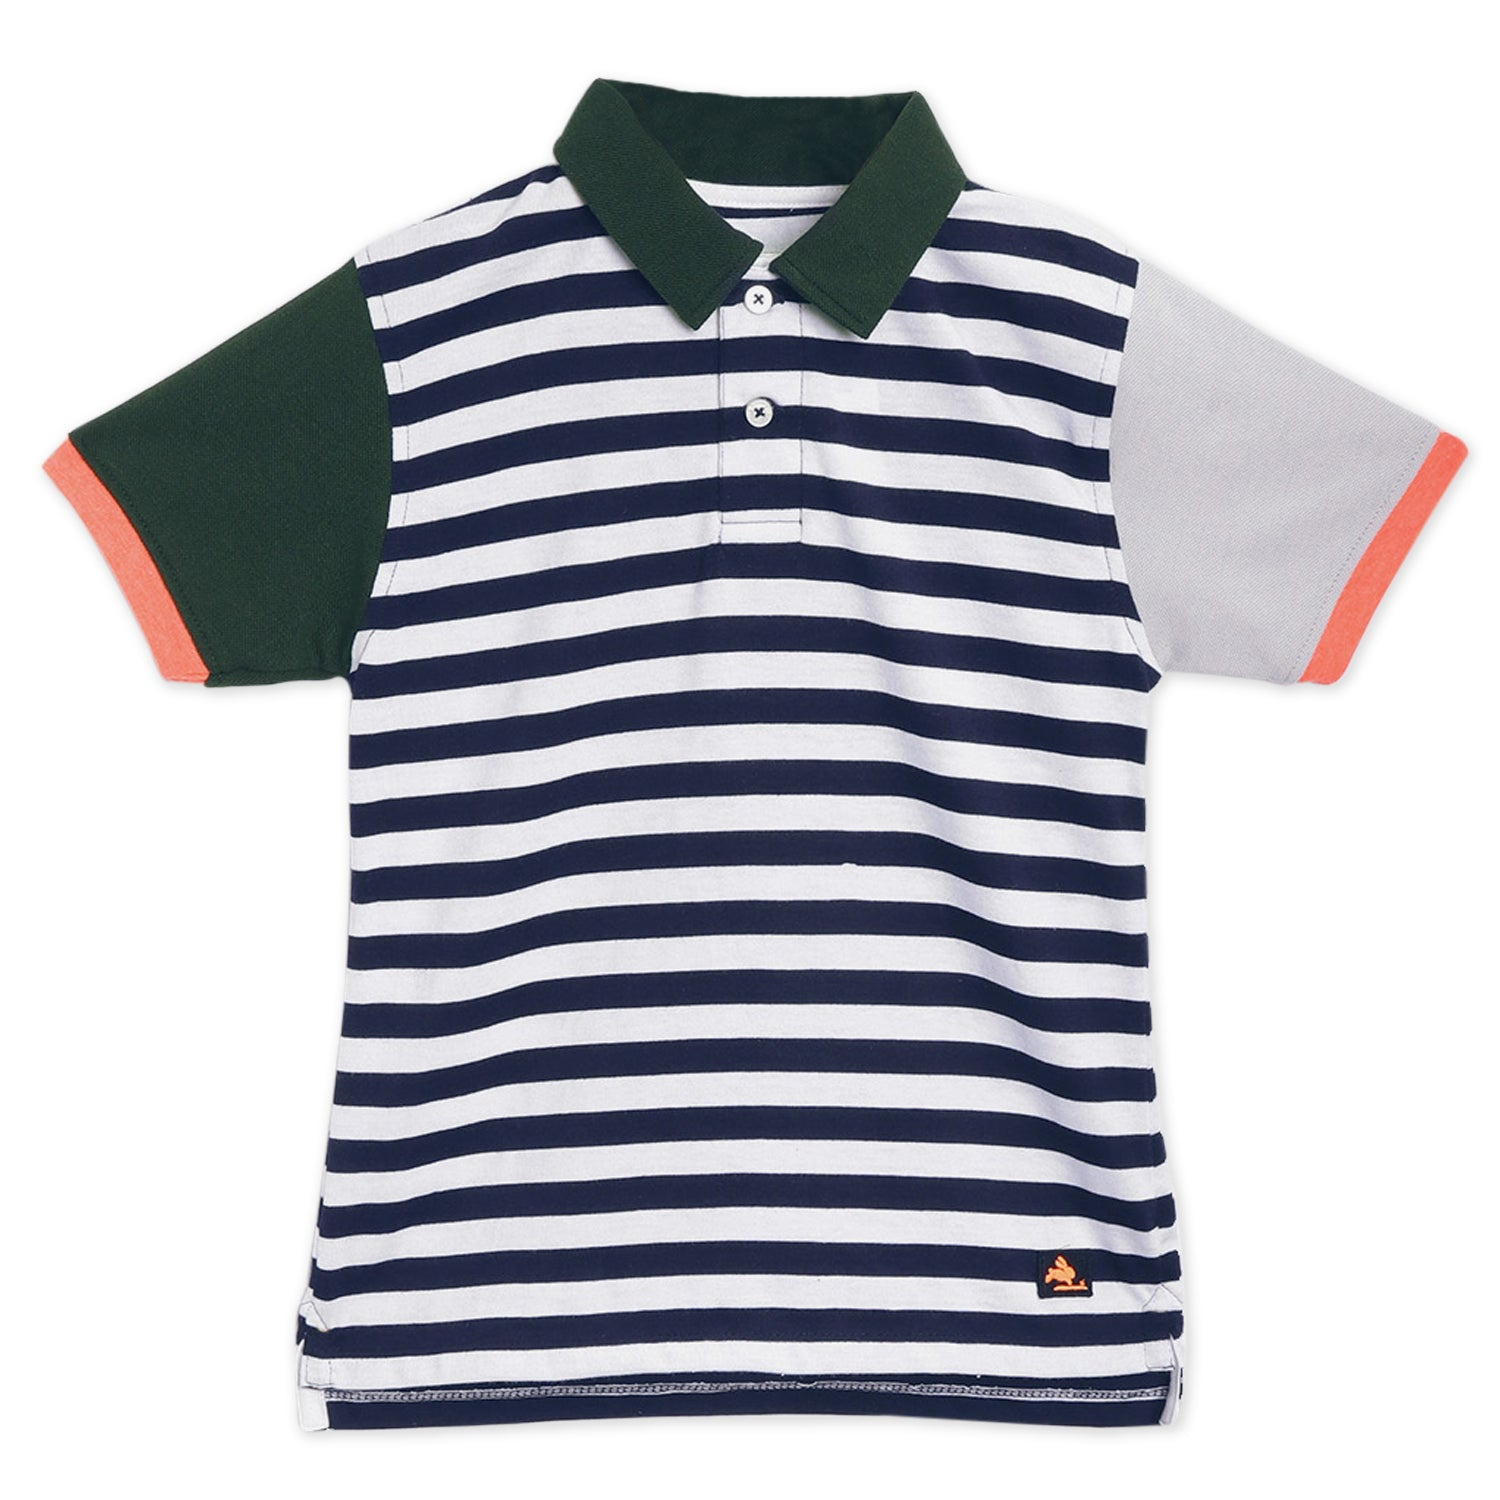 Regular-Striped-Polo-Tshirt